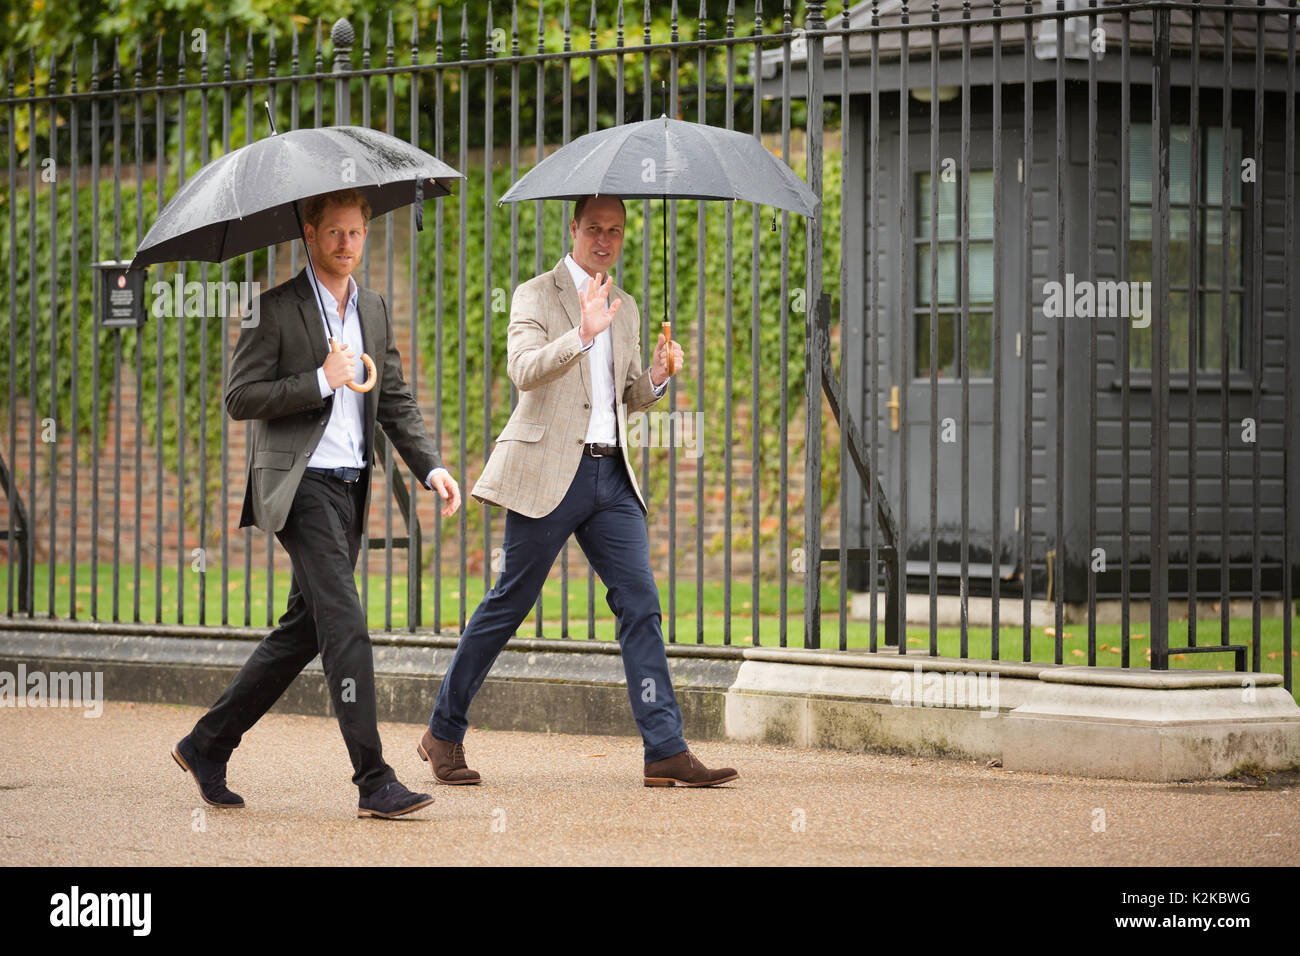 London, UK. 30th Aug, 2017. TRH Princes William and Harry walk towards the floral tributes left at the gates of Kensington Palace left in memory of their mother, Princess Diana, on the eve of the 20th anniversary of her death. Wednesday 30th August 2017 Credit: amanda rose/Alamy Live News Stock Photo